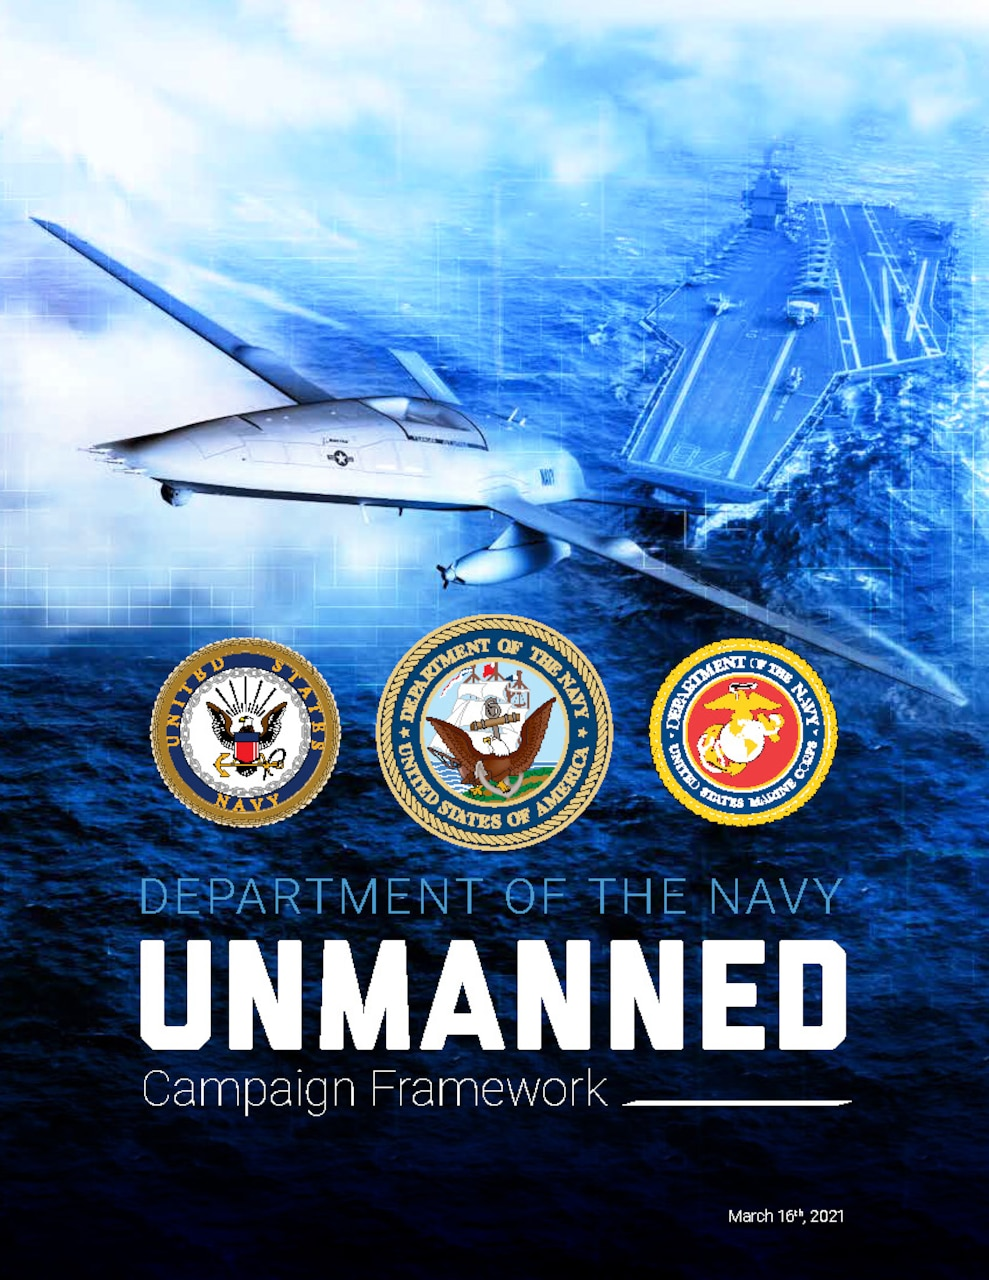 The Unmanned Campaign Plan represents the Navy and Marine Corps' strategy for making unmanned systems a trusted and integral part of warfighting.